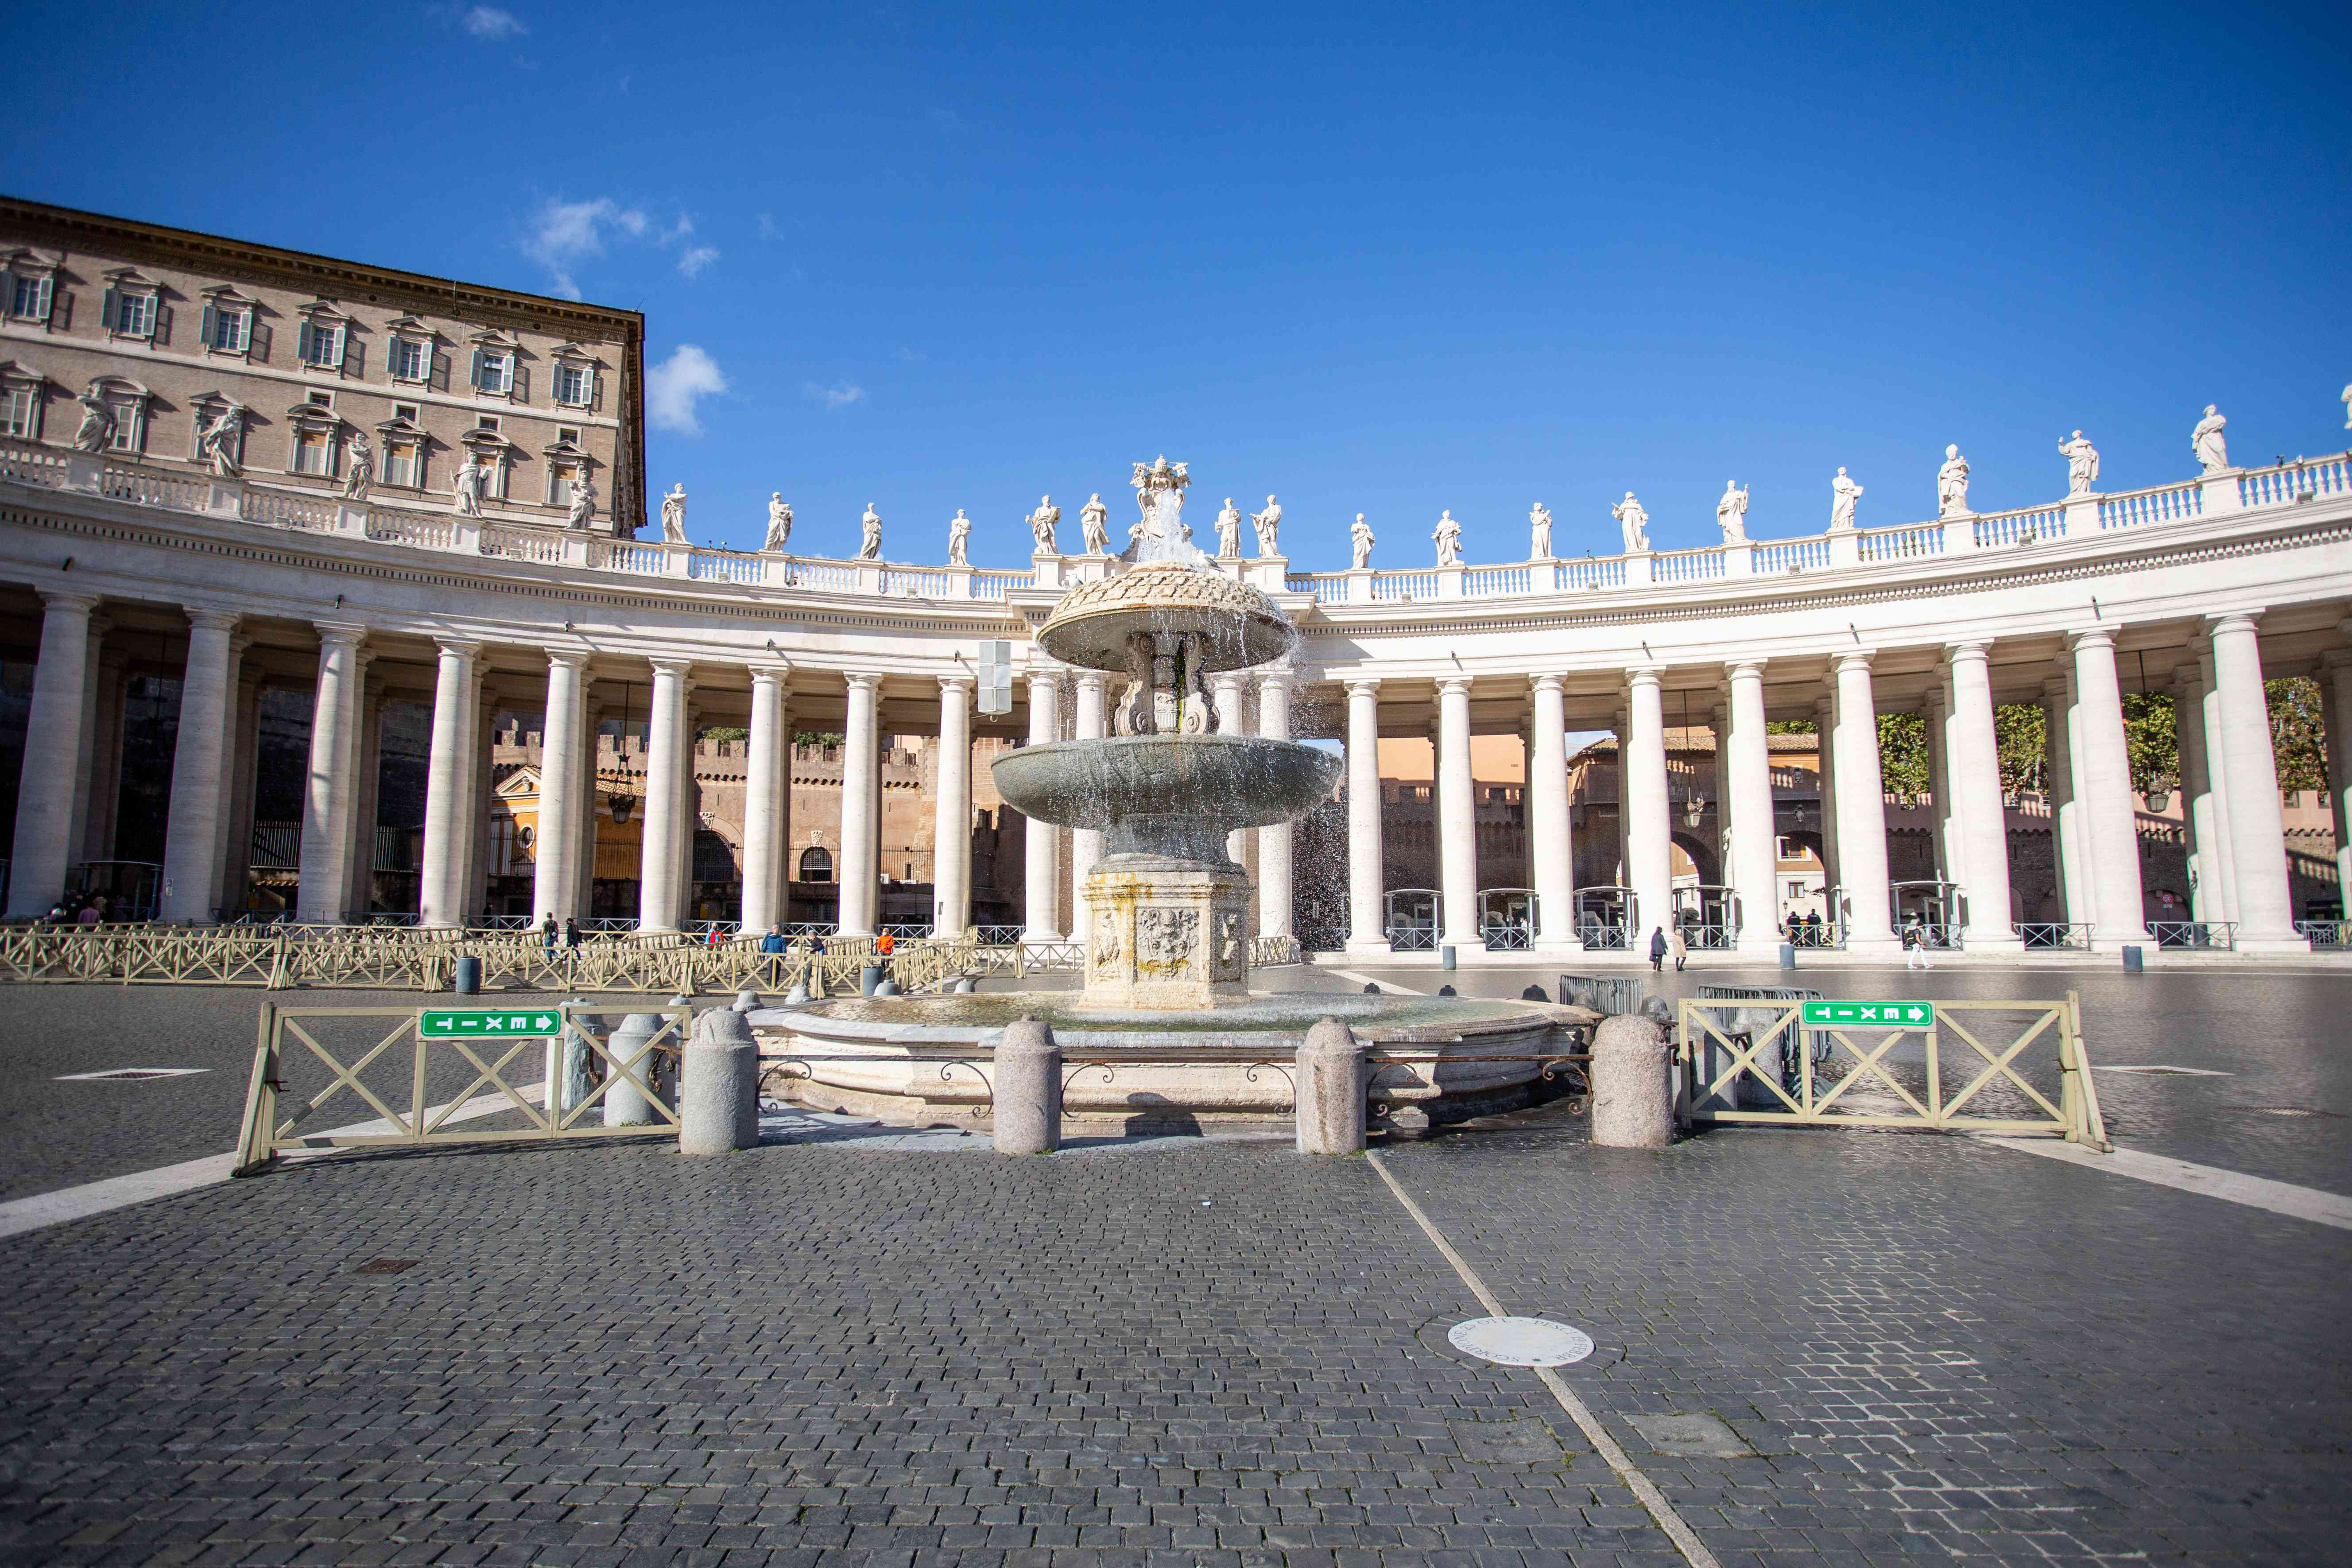 Saint Peter's Square Fountains in Rome, Italy